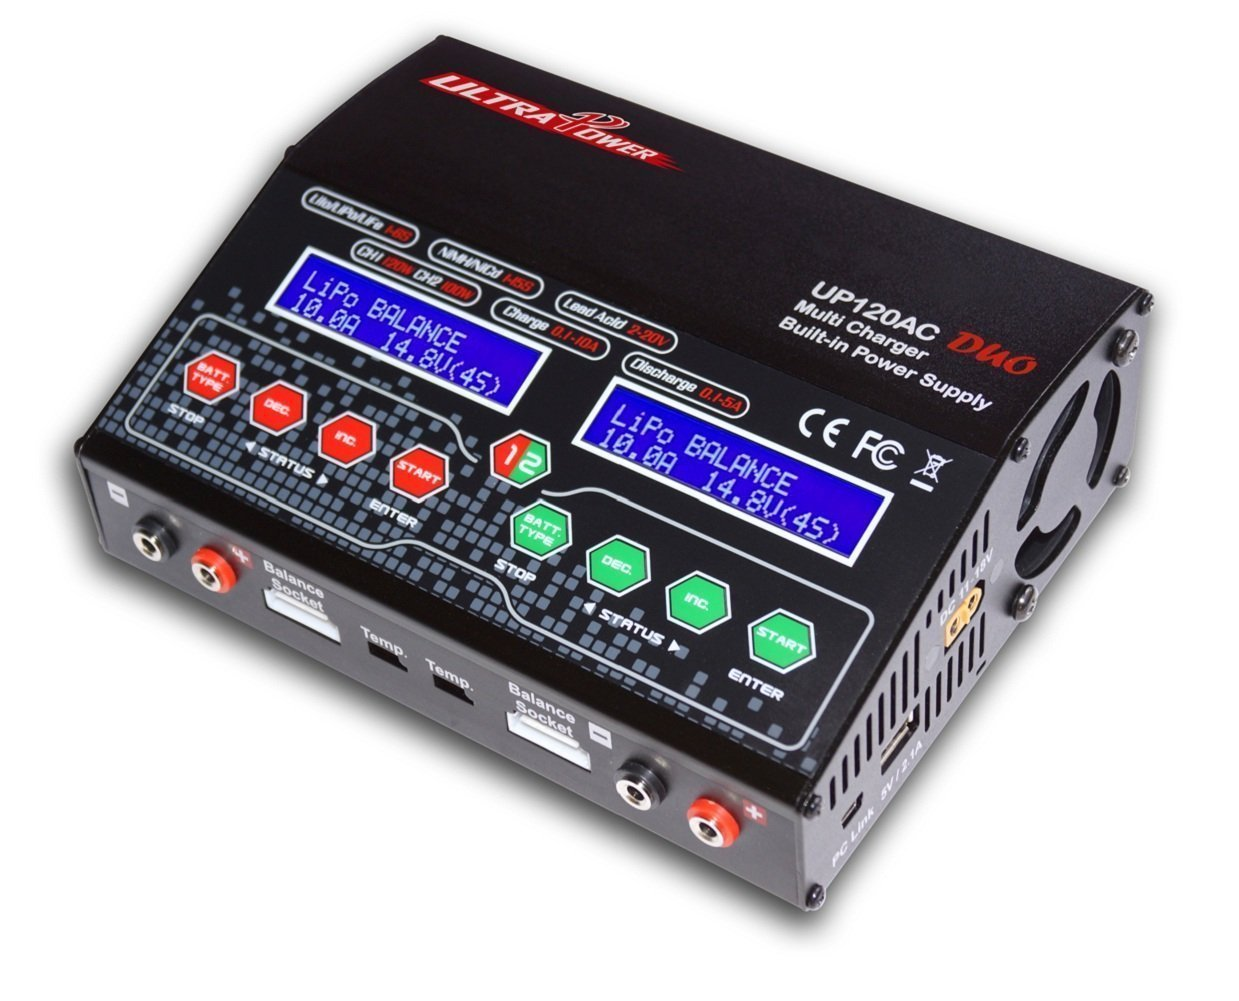 Crazepony UP-120AC 240W Dual Balance Charger AC DC for LiPo LiHV LiIon LiFe NiCd NiMh Pb RC Battery Built-in Power Supply